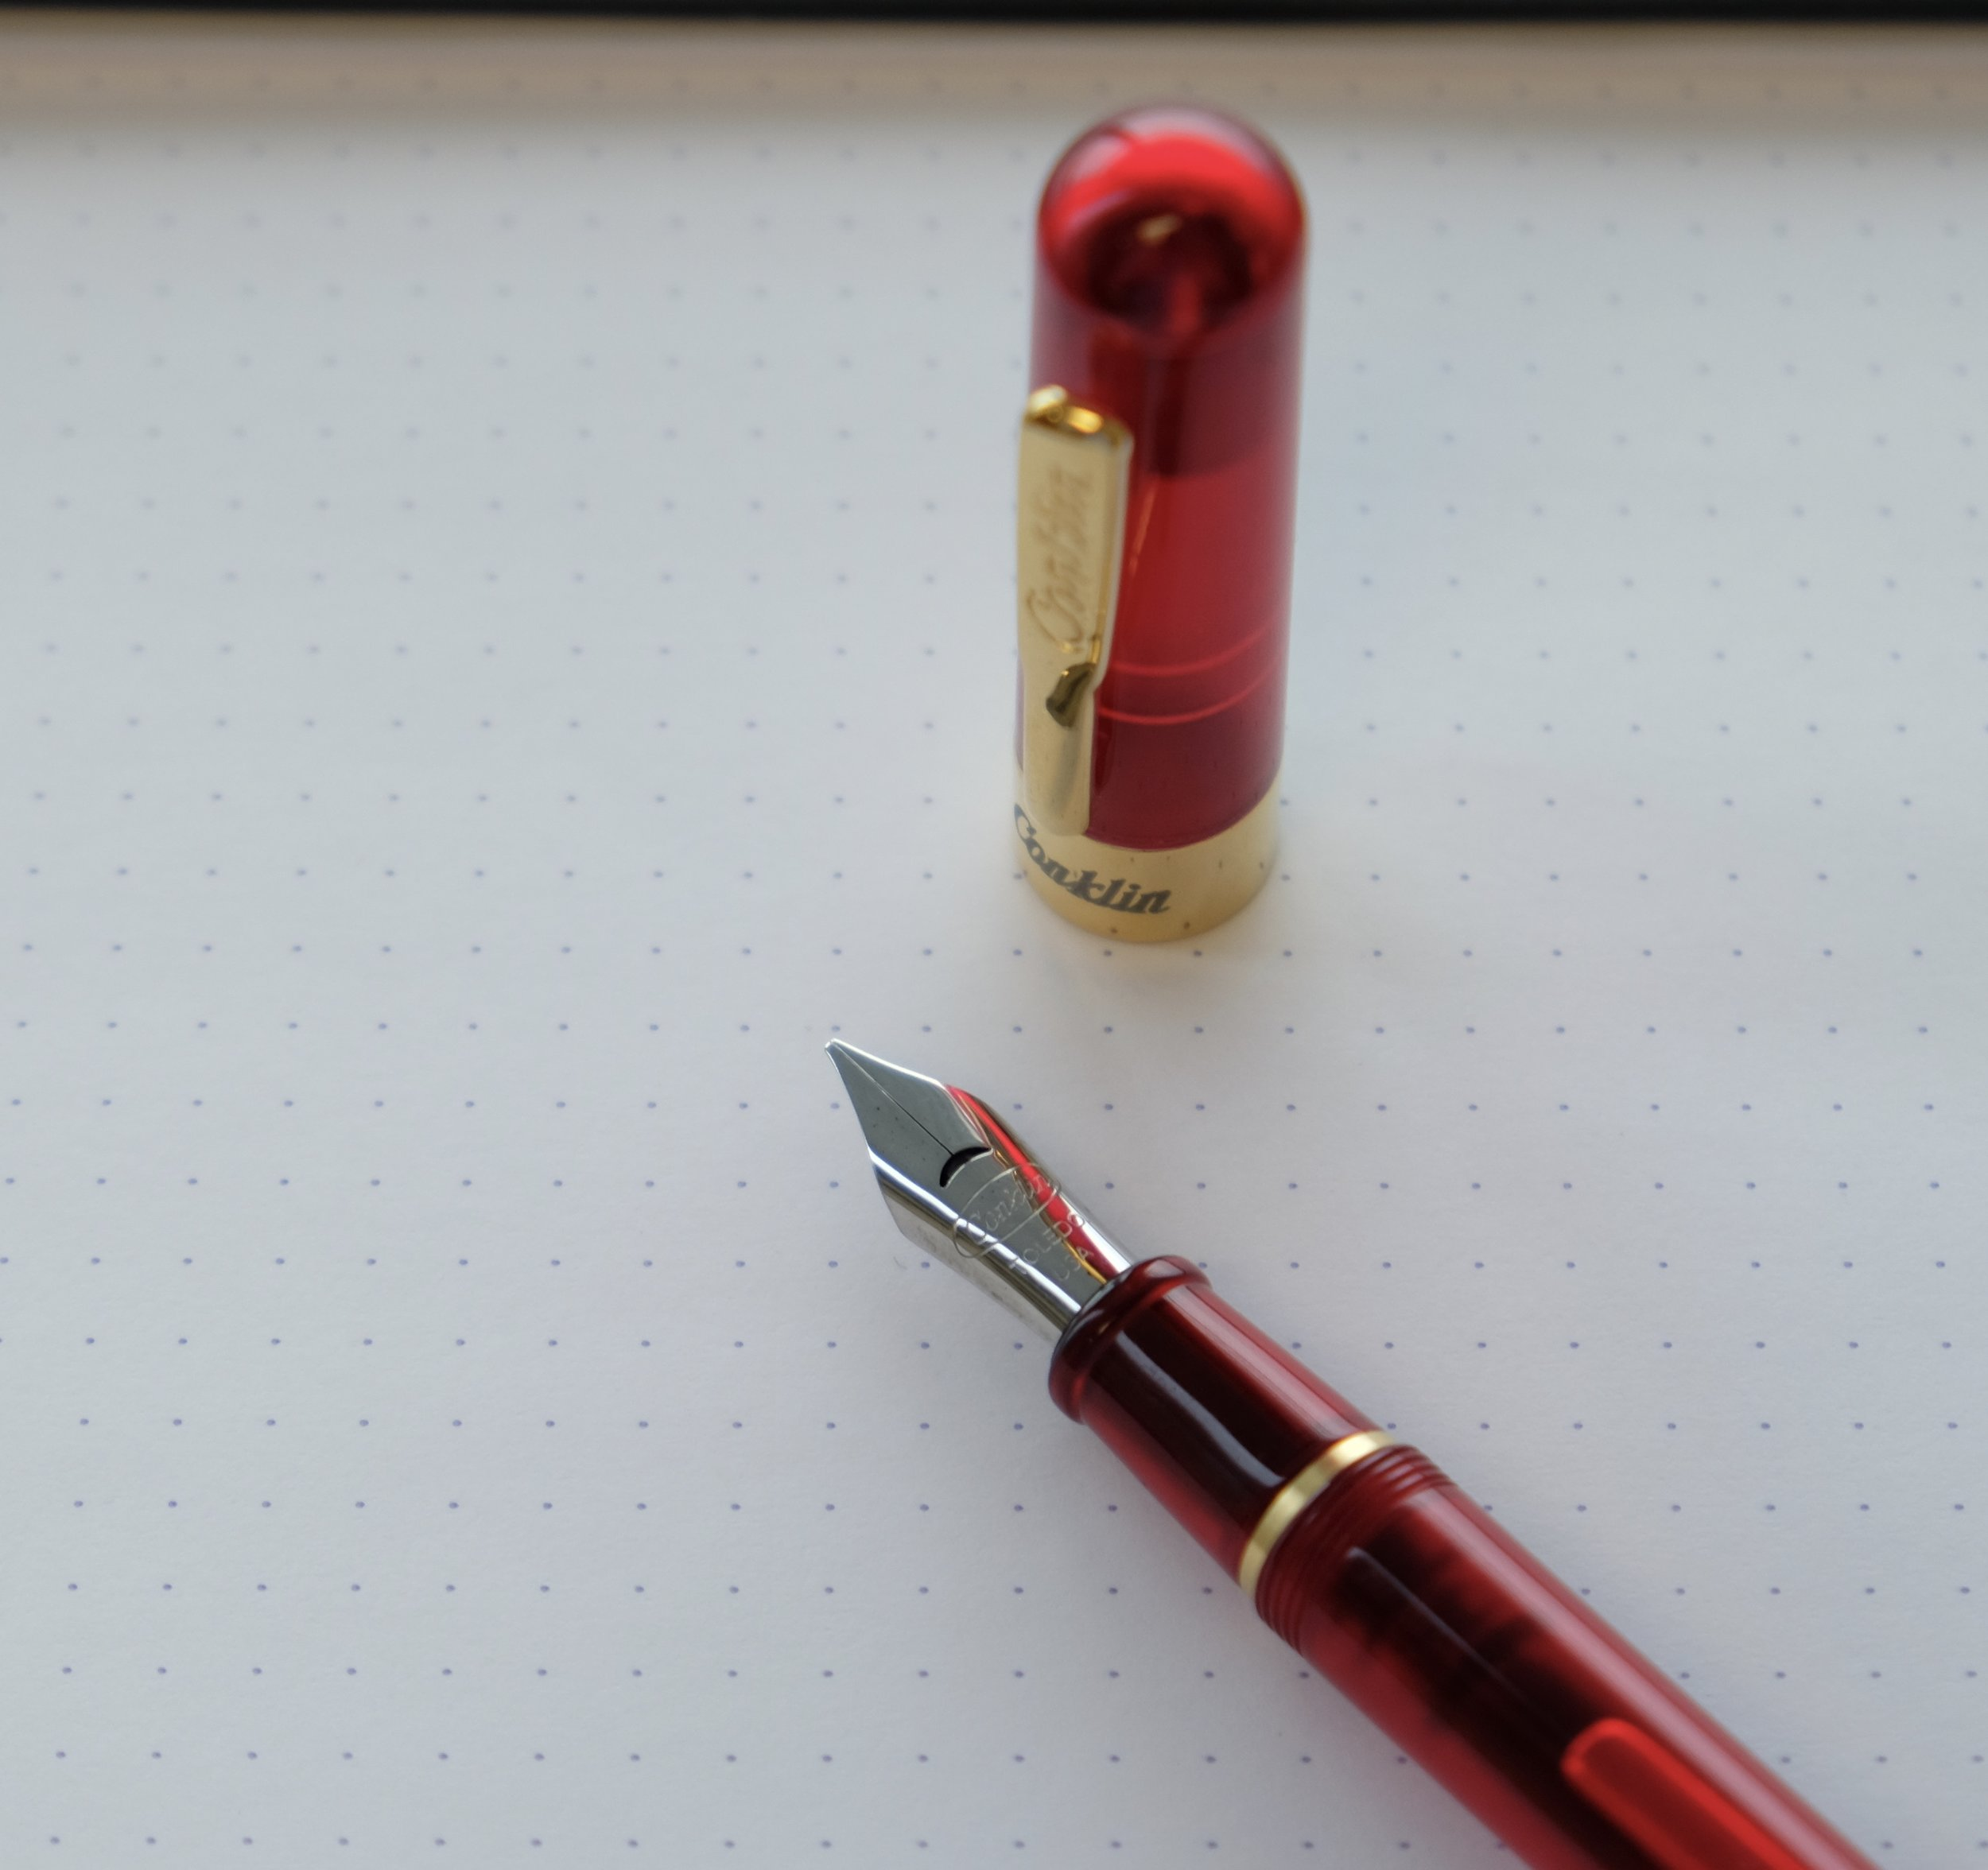 Conklin's steel stub on the Mark Twain Crescent Filler. Conklin's non-stub nibs are two-toned steel and gold plate, but the stubs are all stainless.